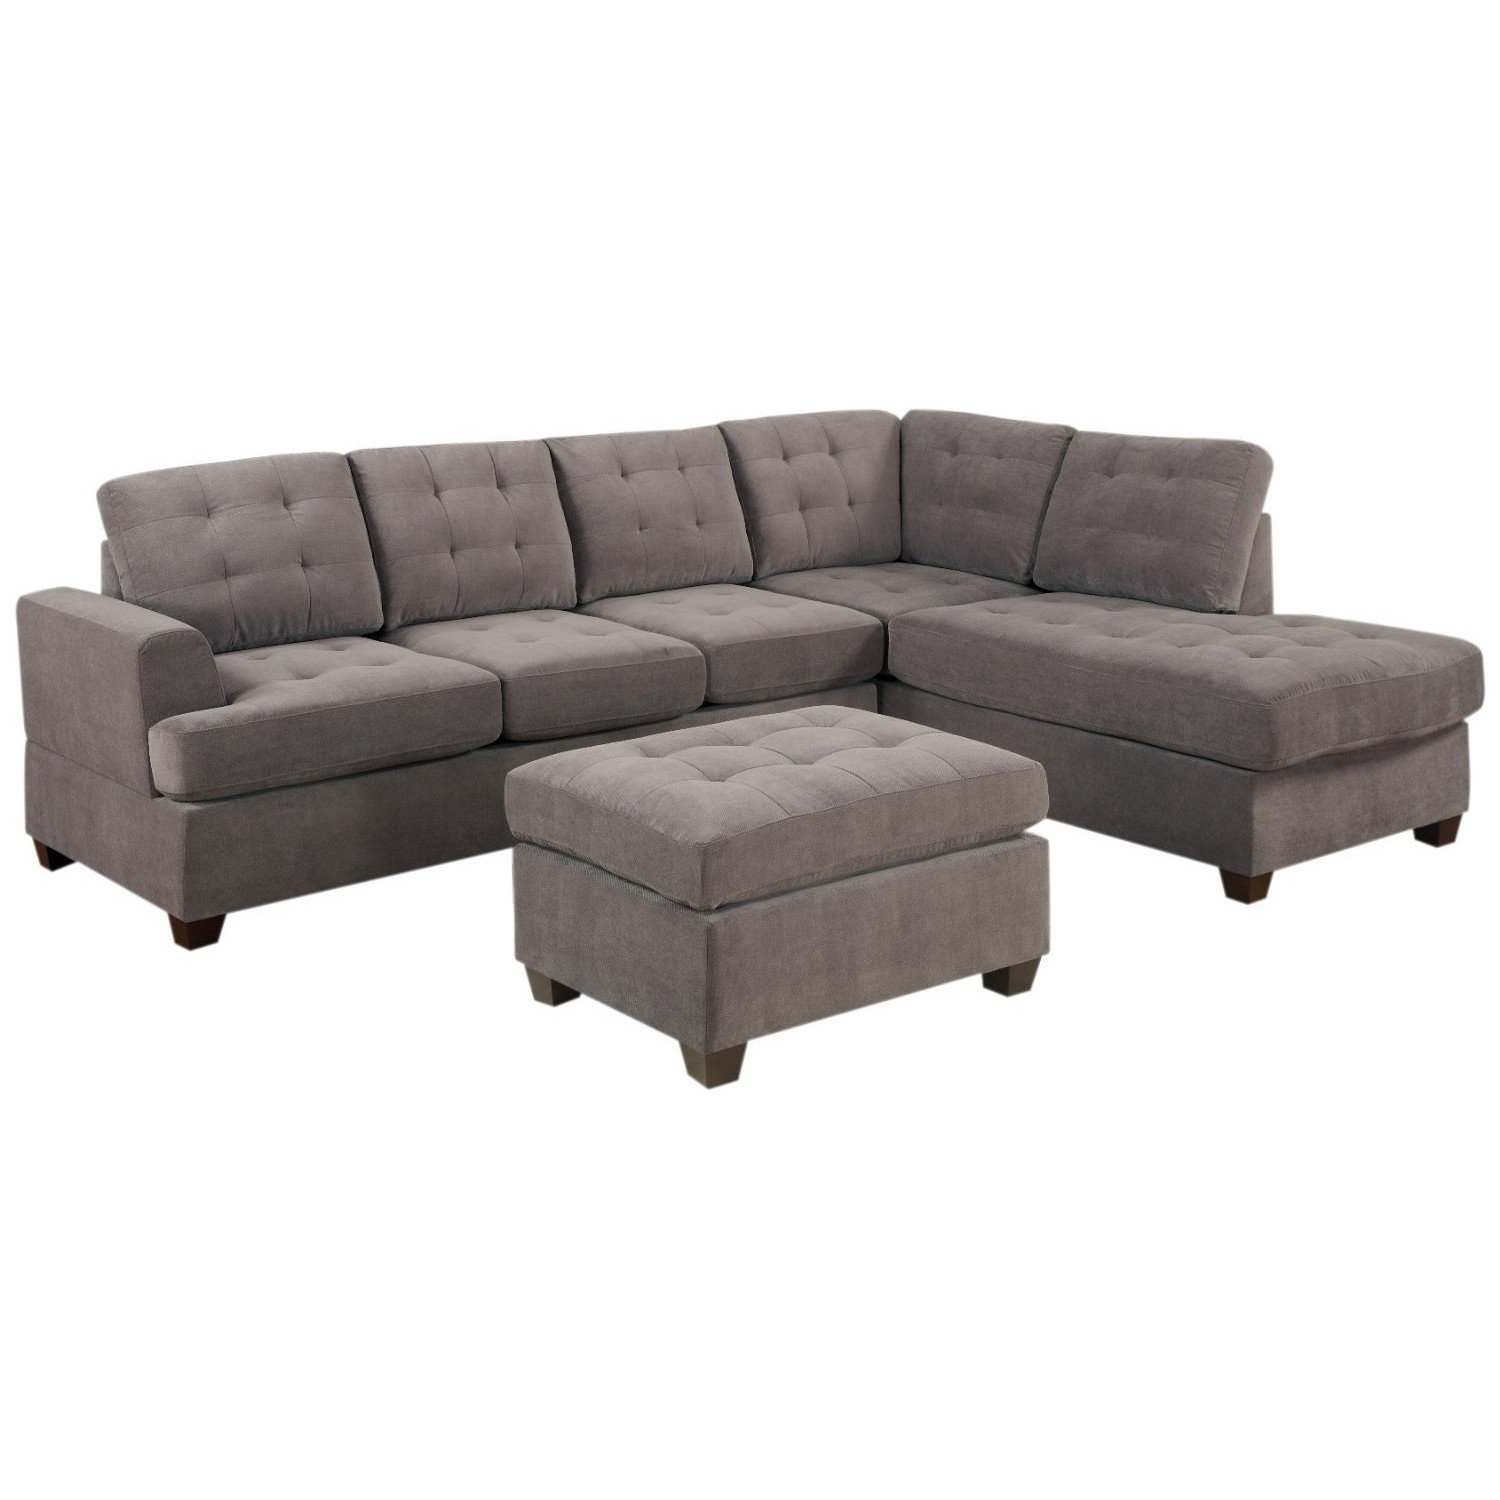 Awesome Sectional Sleeper Sofa With Chaise 76 Modern Sofa Ideas With With Regard To Collins Sofa Sectionals With Reversible Chaise (View 3 of 30)